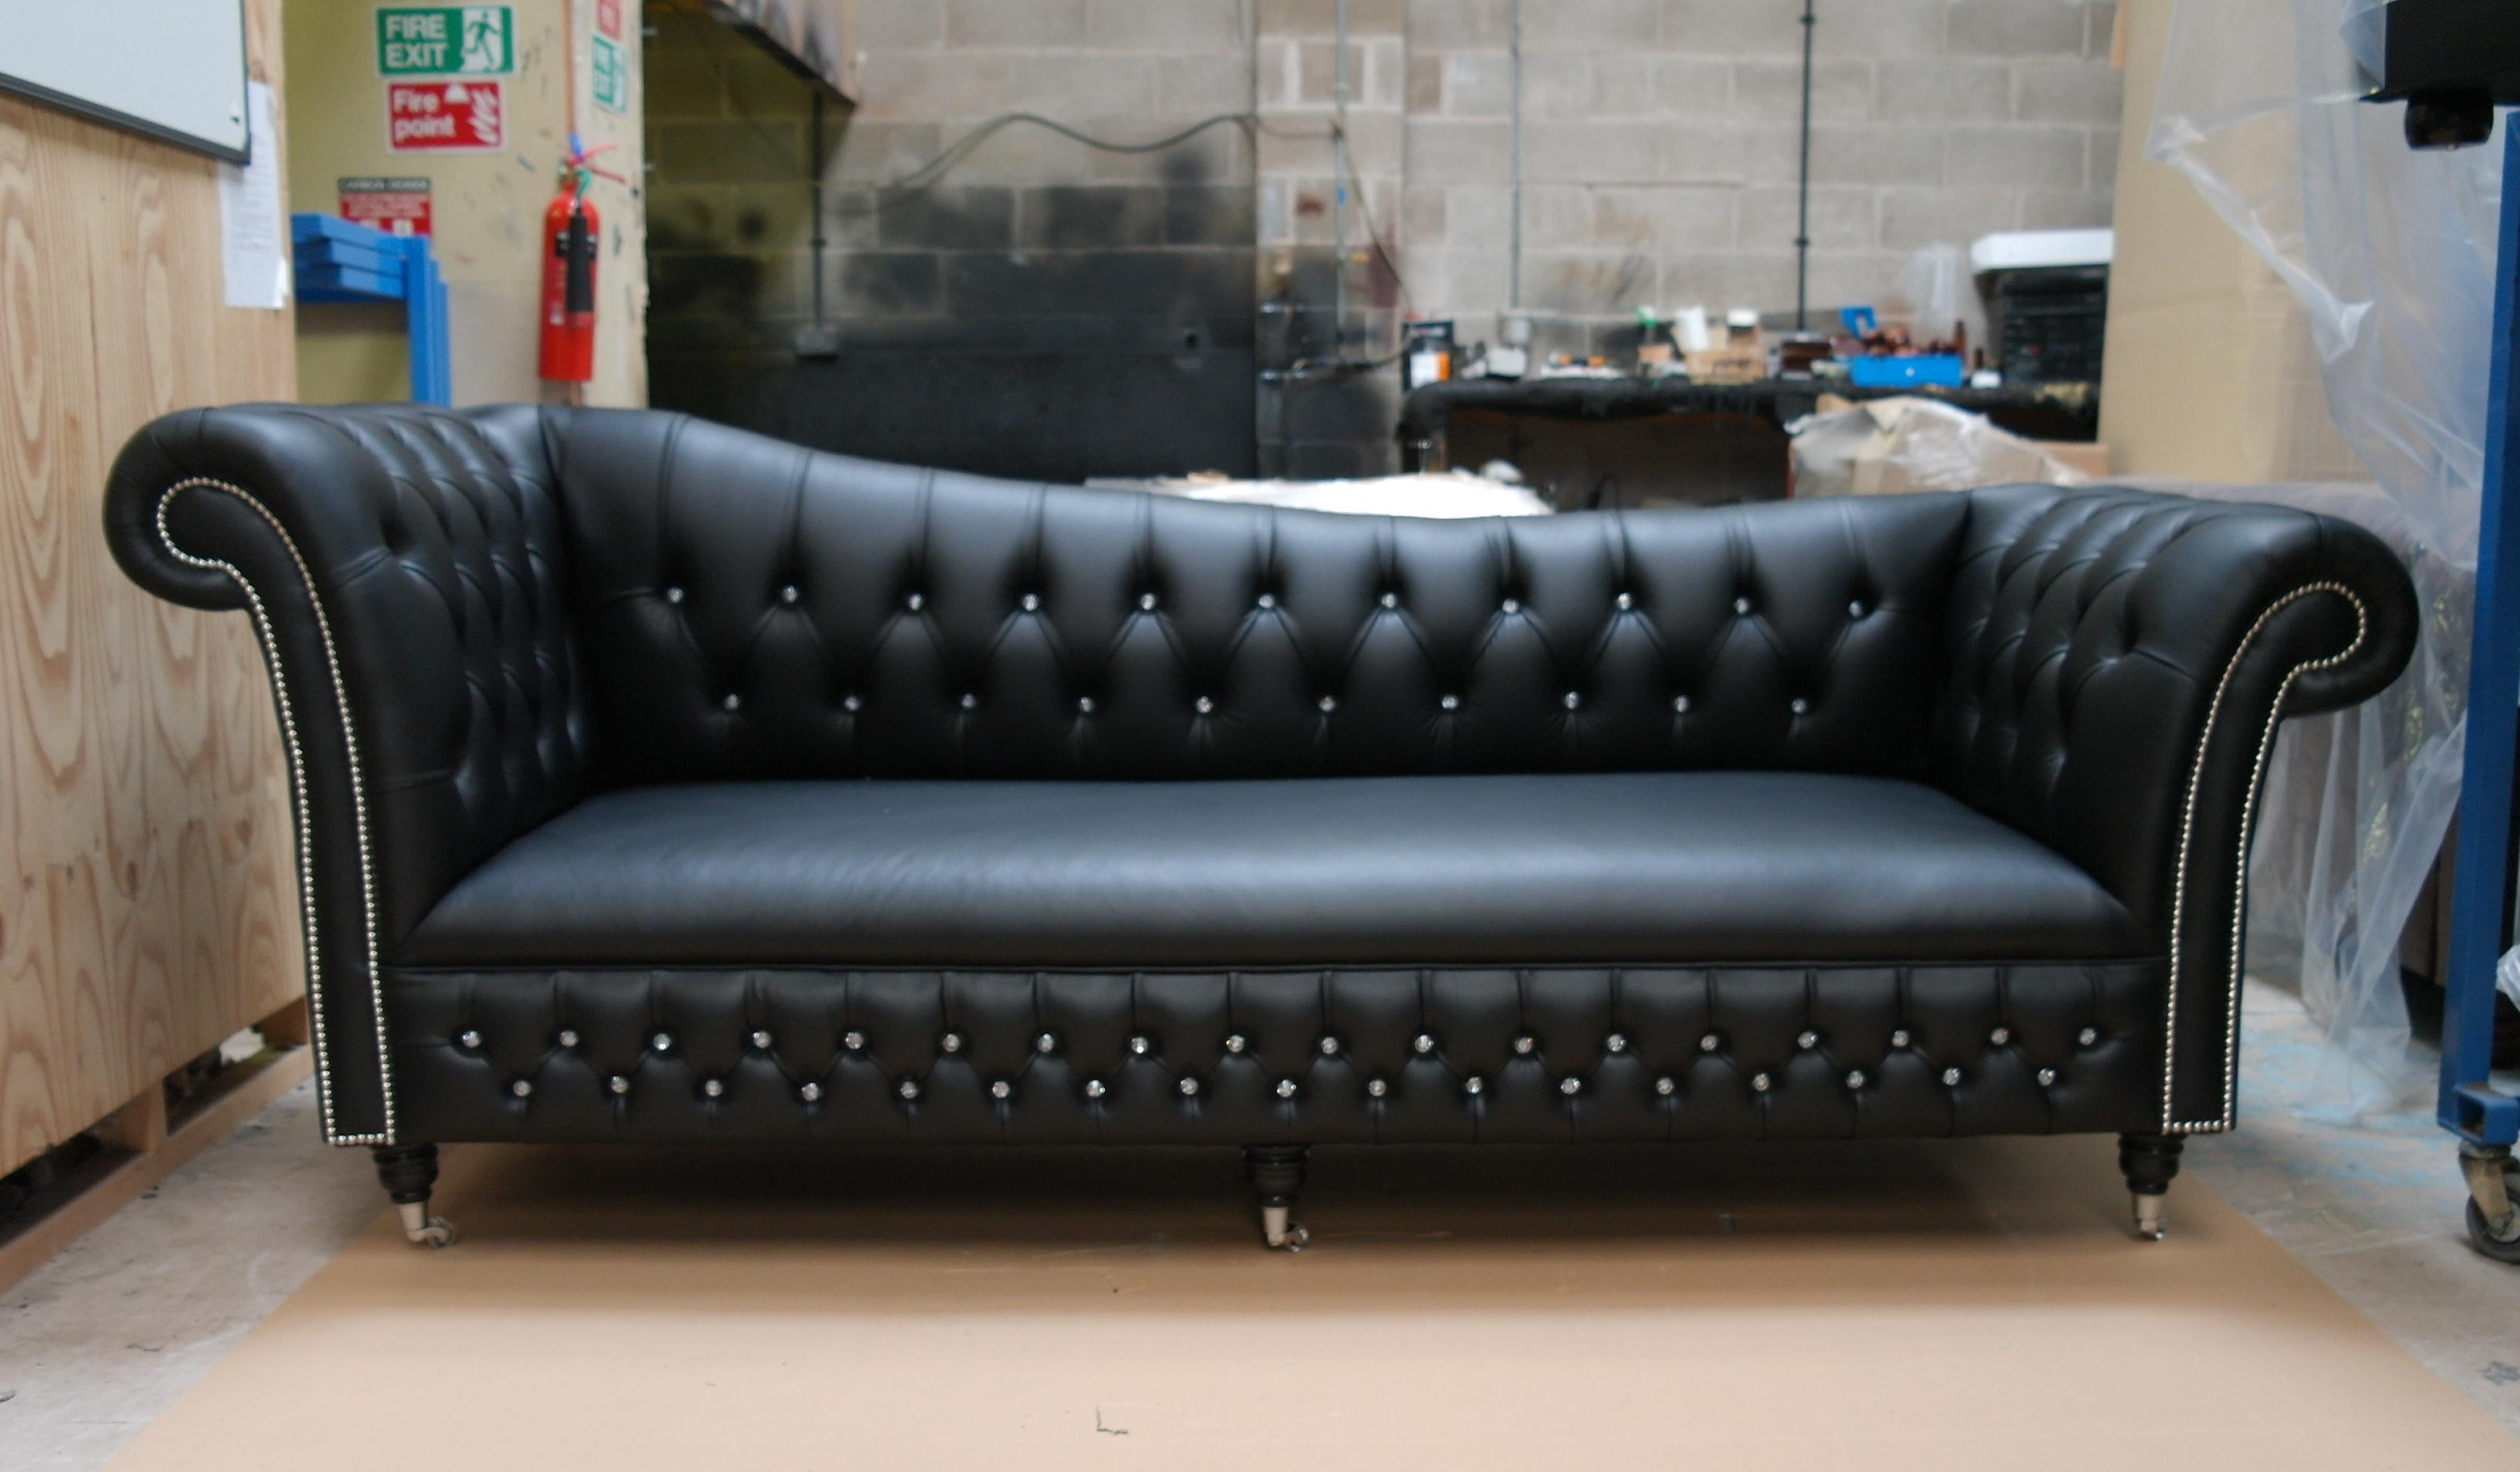 Black Chesterfield Sofa Sophia Swarowski Design Ideas | Advice For With Chesterfield Black Sofas (Image 1 of 20)